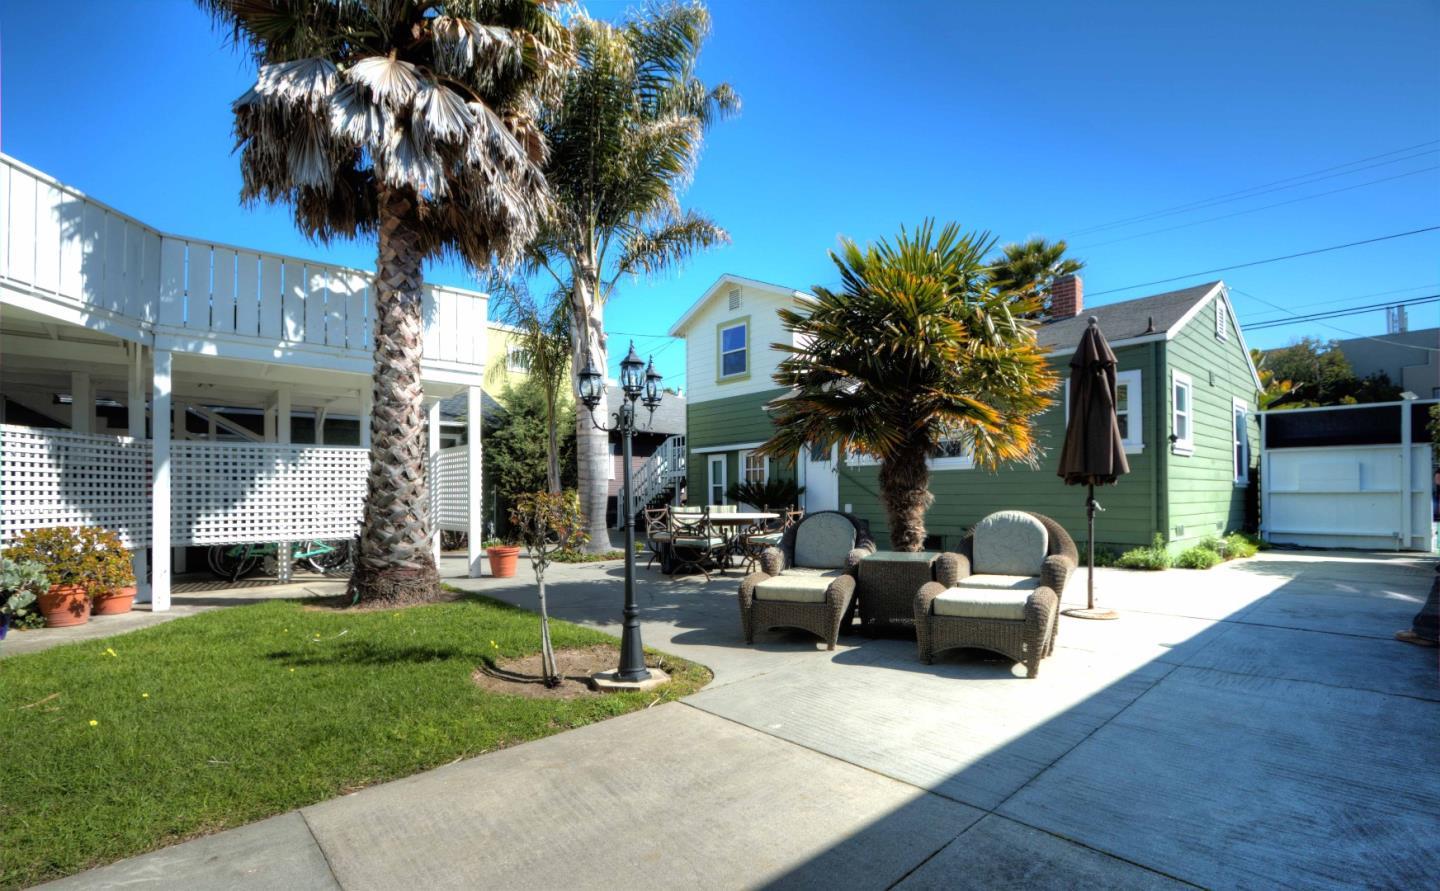 Casa Multifamiliar por un Venta en 225-241 7th Avenue Santa Cruz, California 95062 Estados Unidos